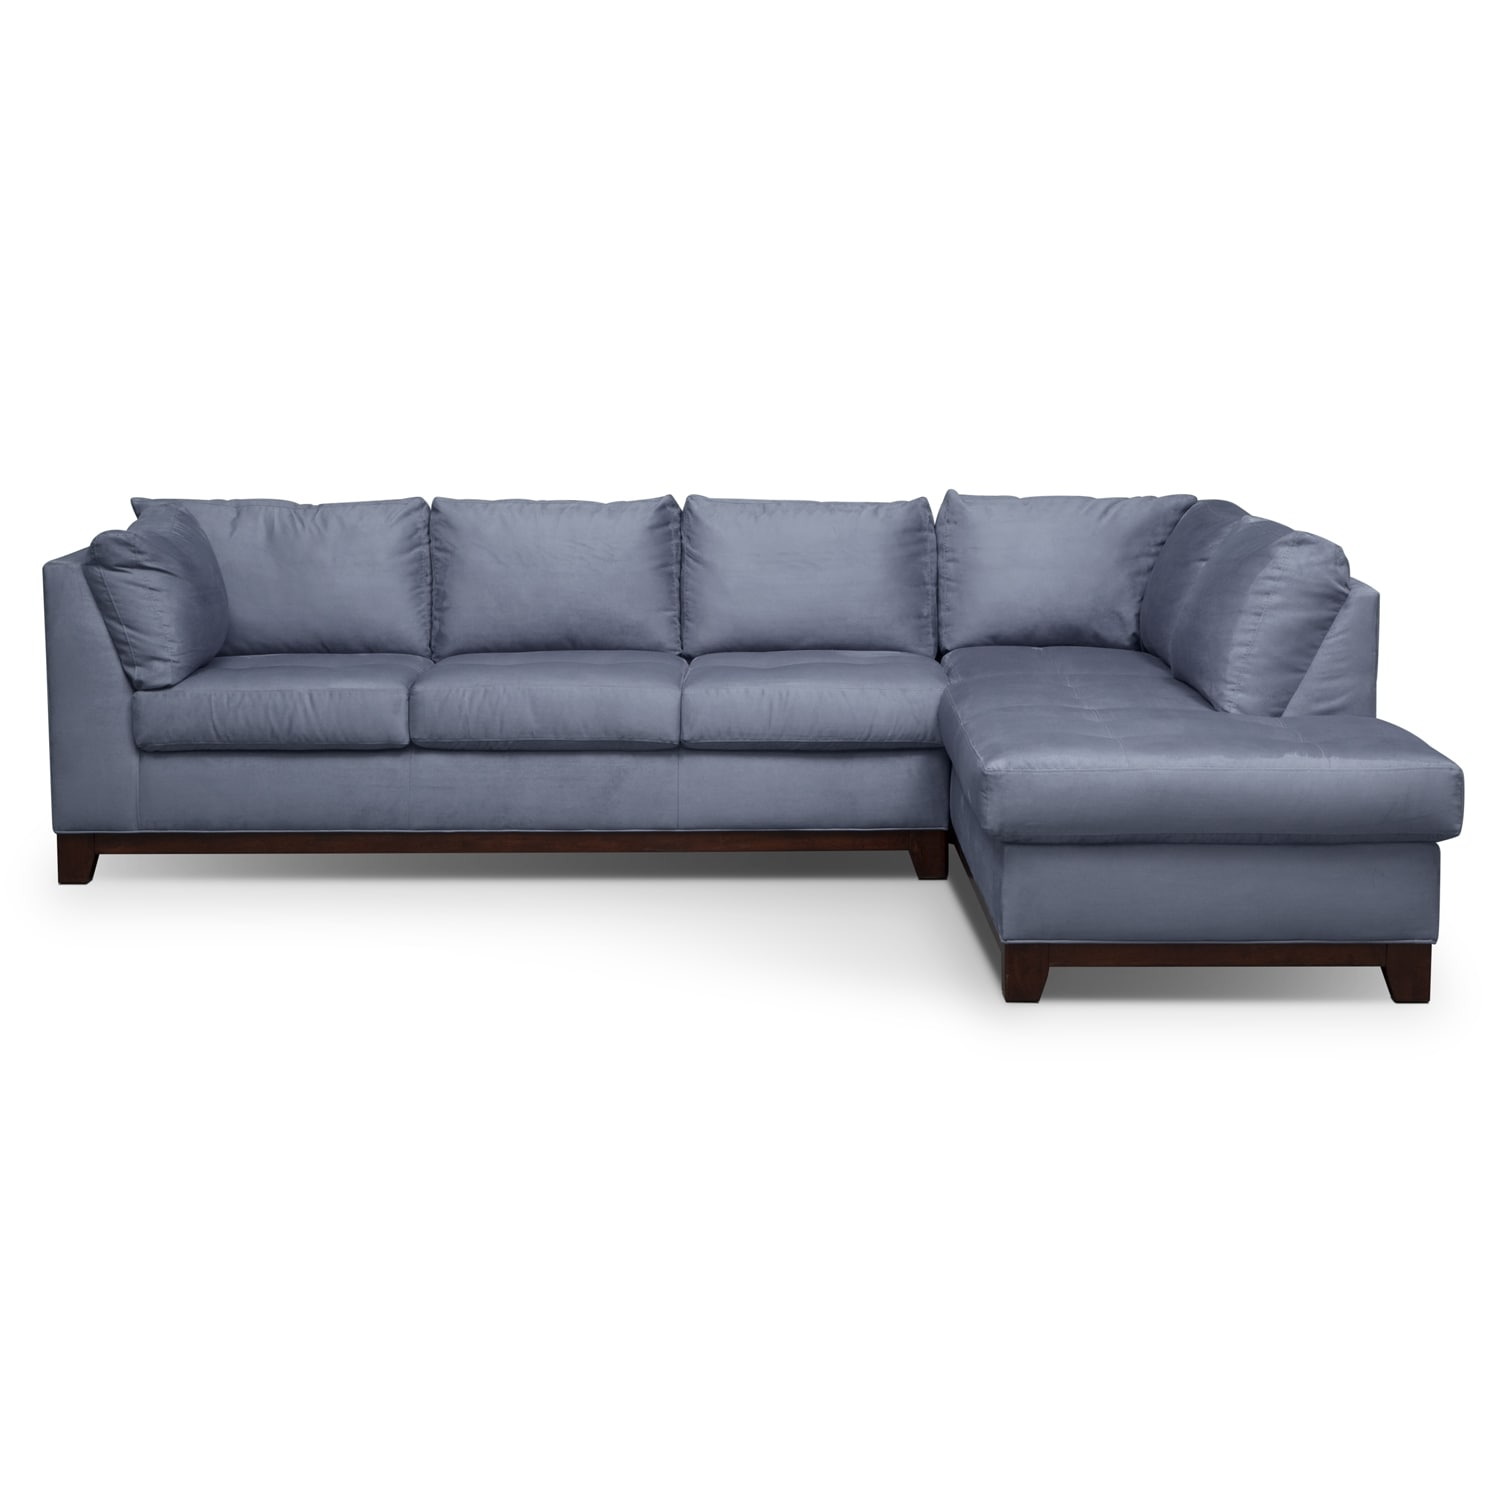 Soho 2 Piece Sectional with Right Facing Chaise Steel